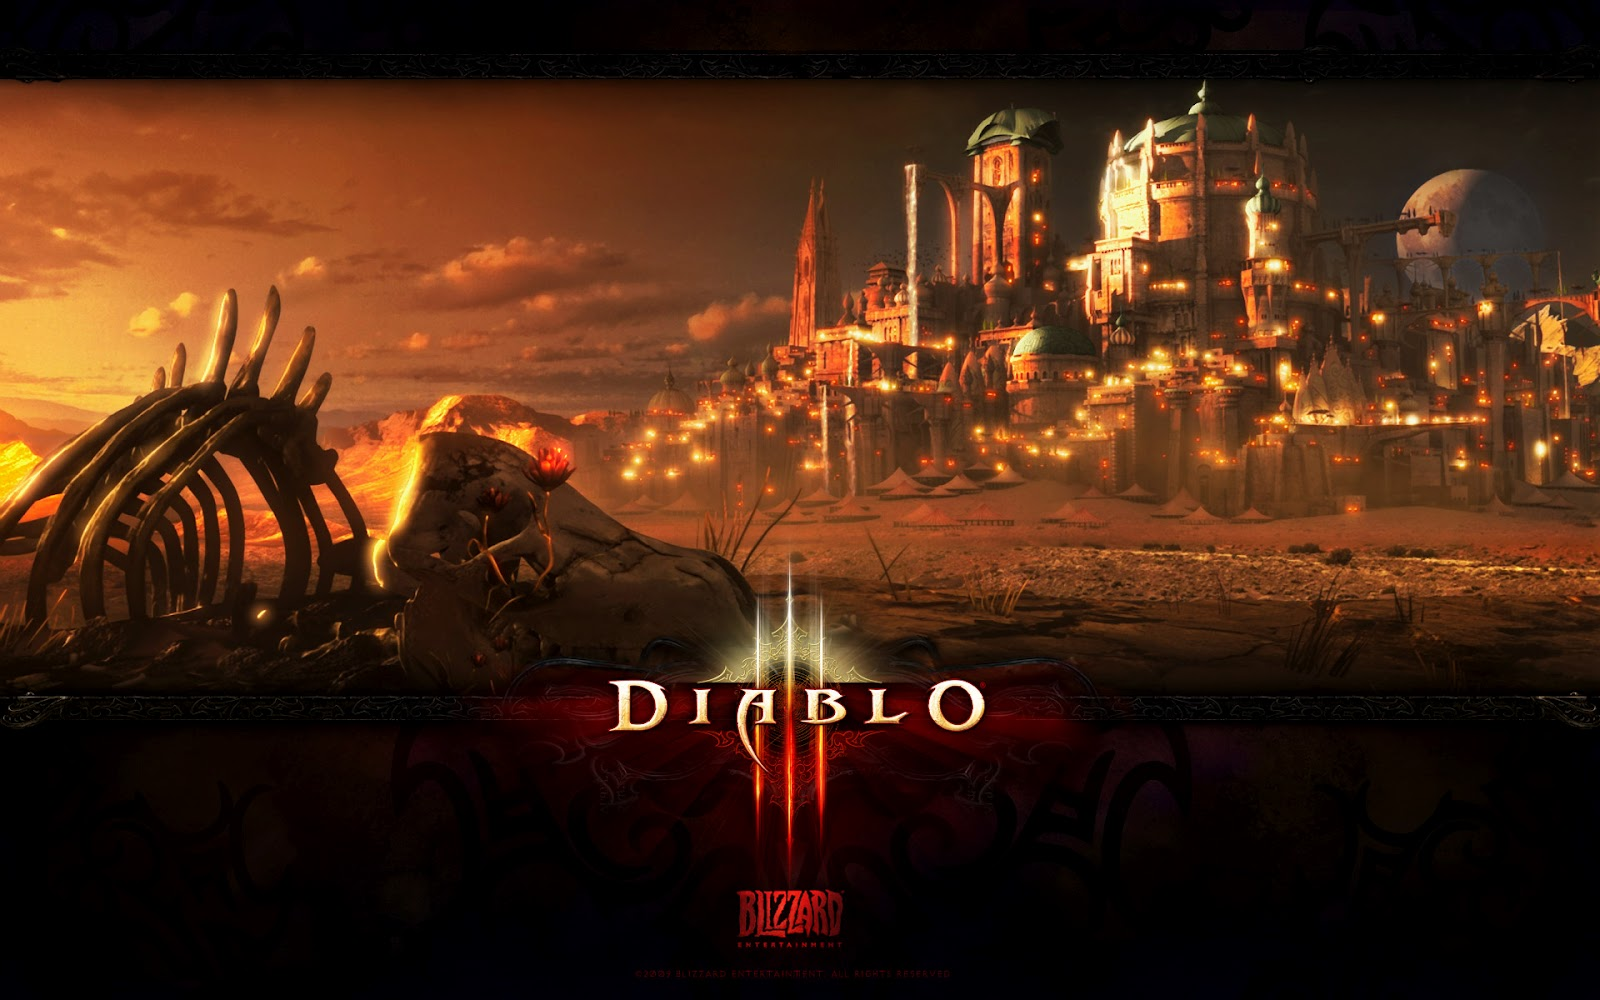 diablo 3 game characters hd wallpapers hd wallpapers